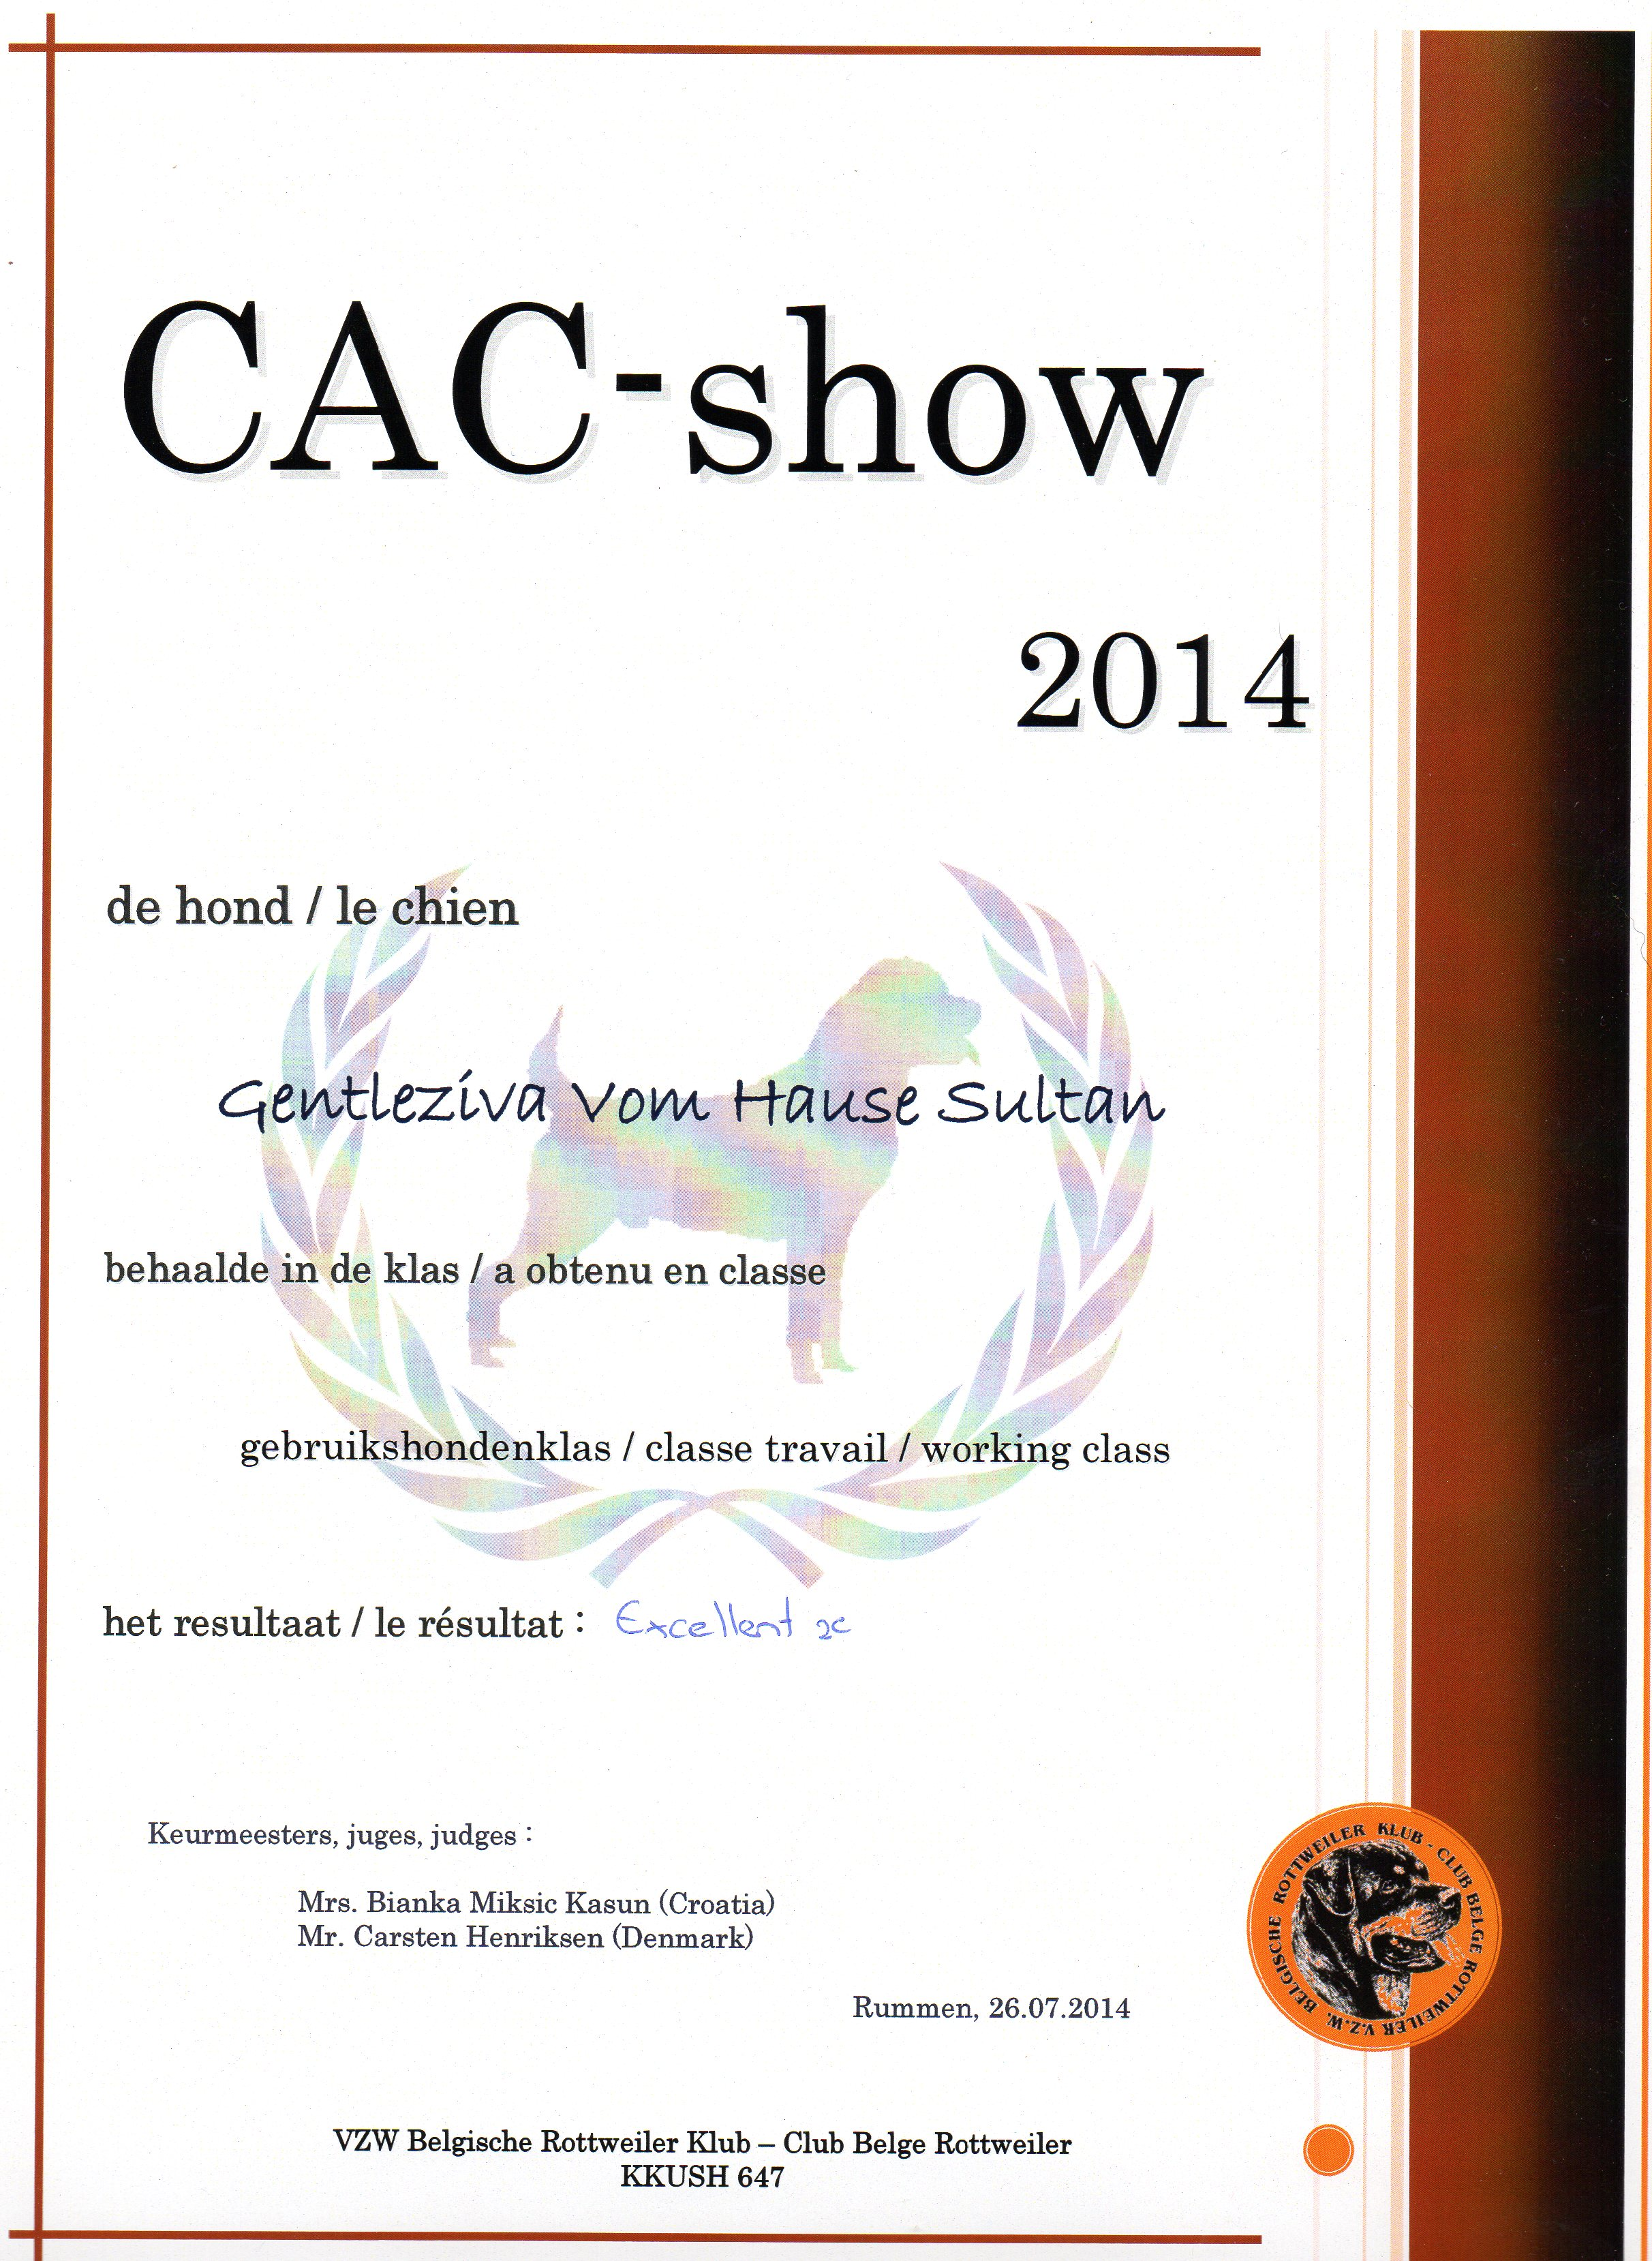 BRk cac-show